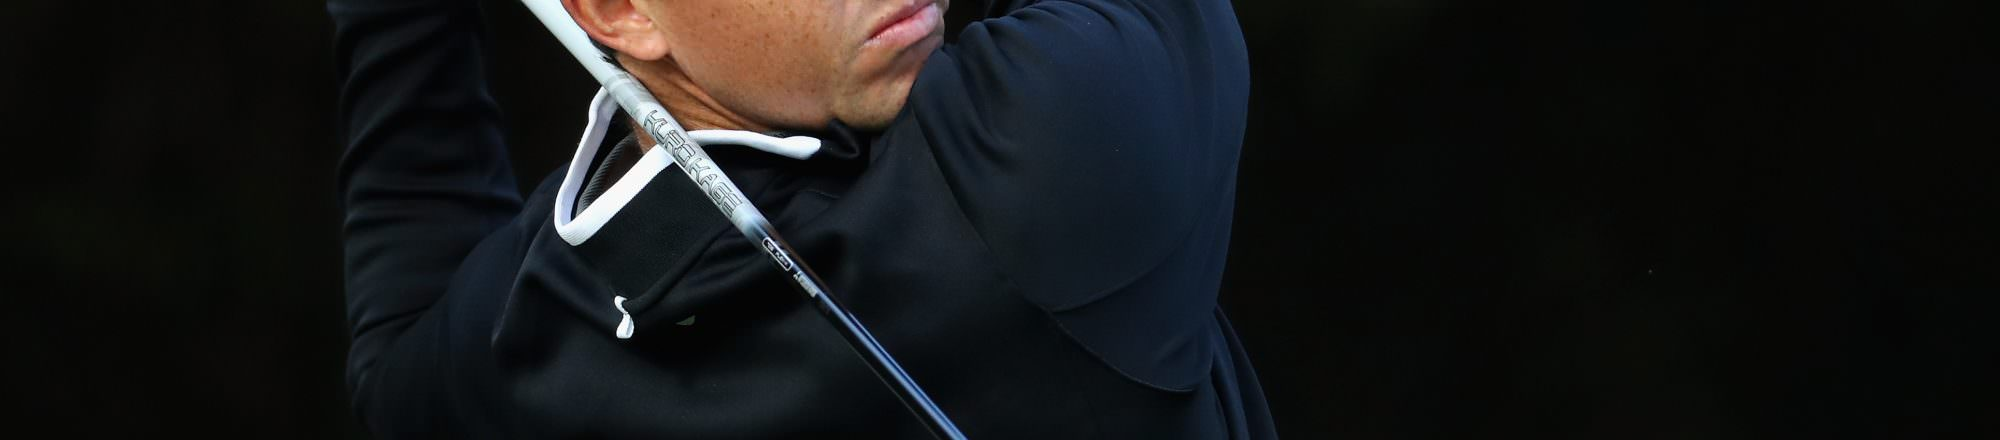 Golf driving distance: Pros and hackers further apart than ever